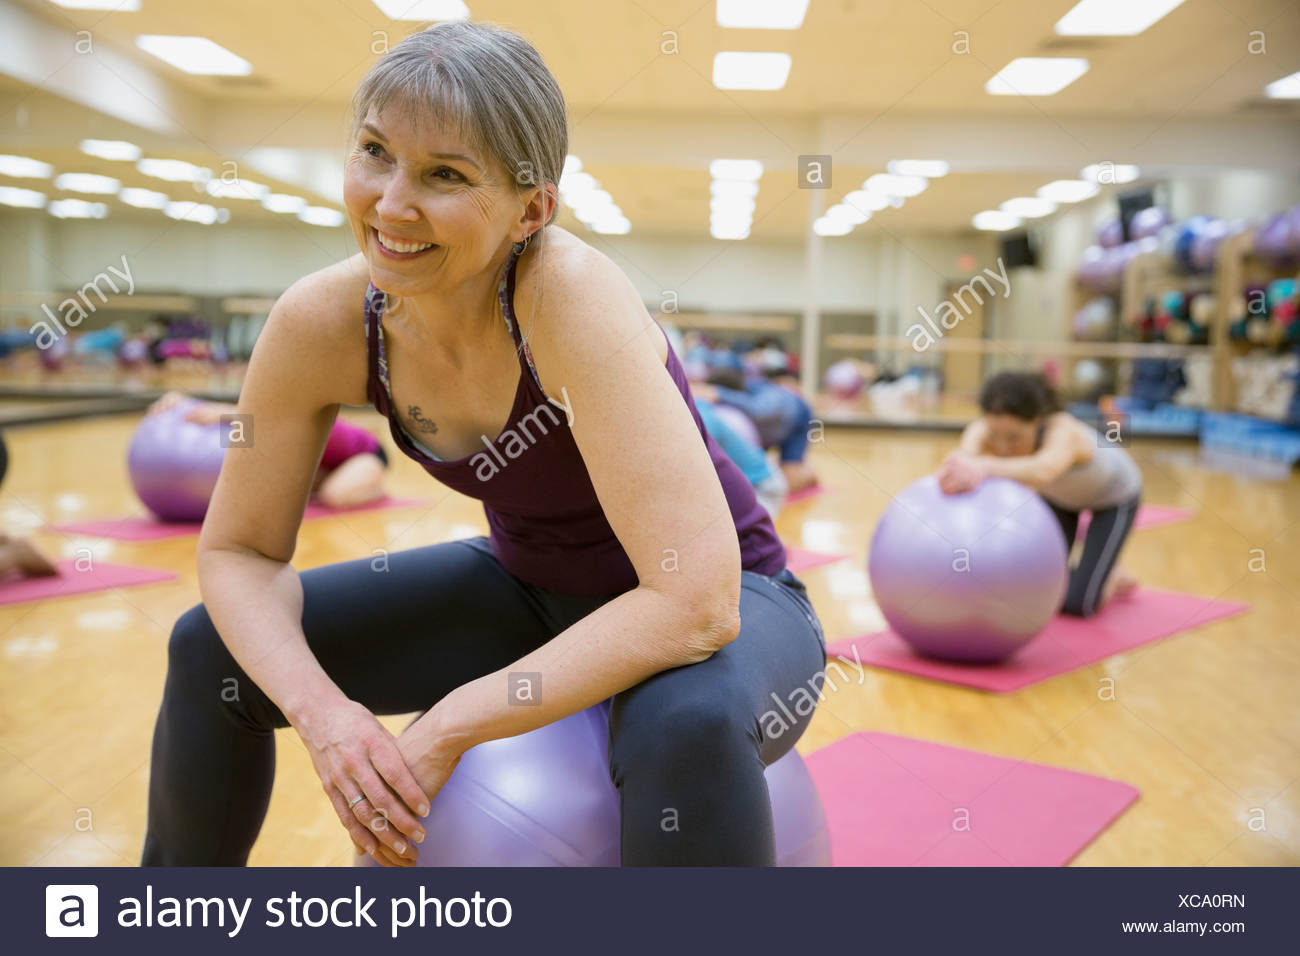 Smiling woman on fitness ball in exercise class - Stock Image